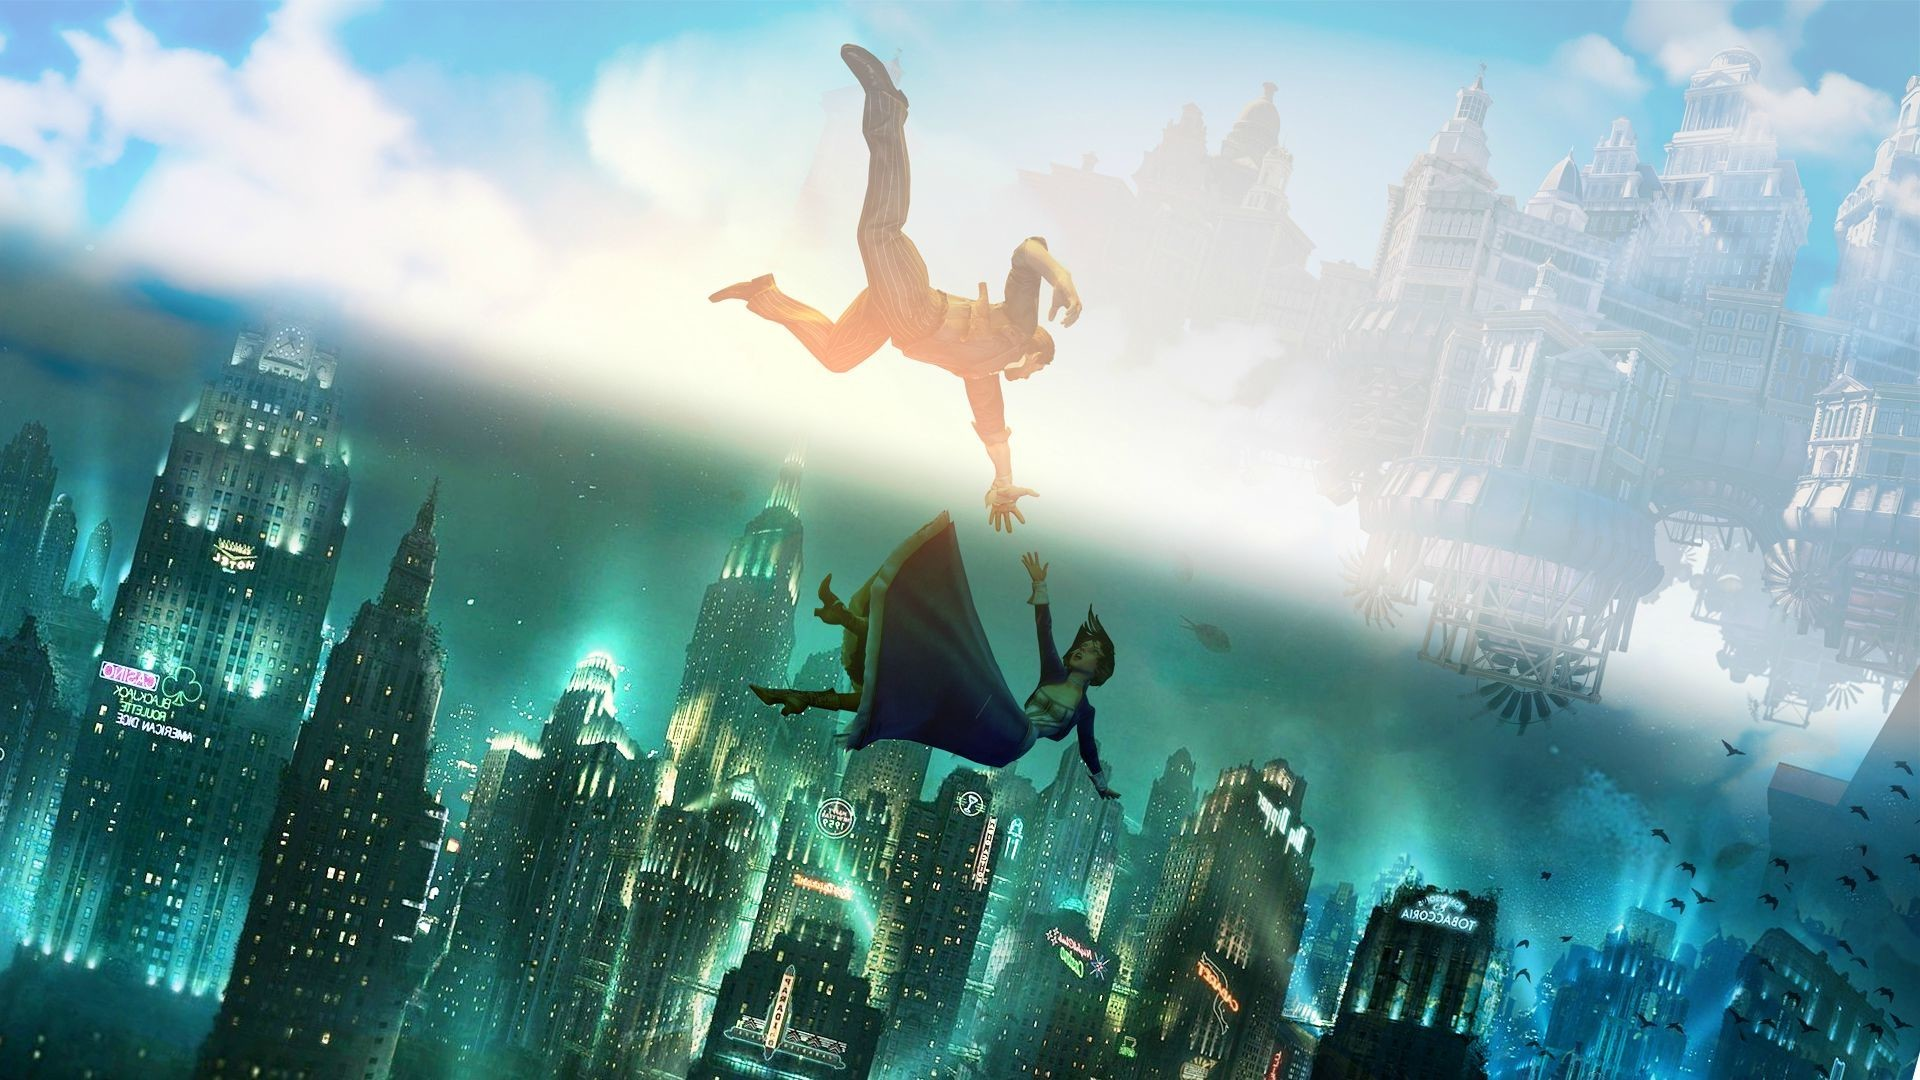 Bioshock Infinite Falling Wallpaper Hd A Series Of Unfortunate Events Wallpapers 73 Images